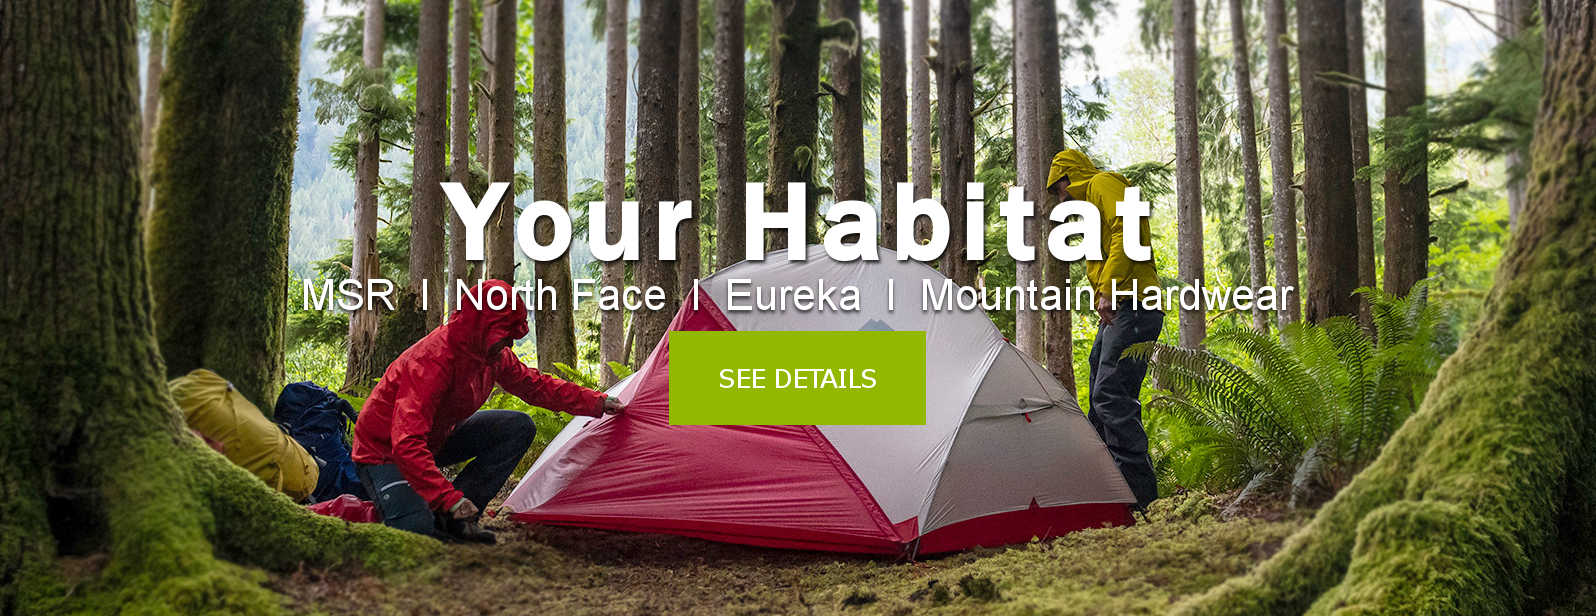 Wilderness Supply - Home Page